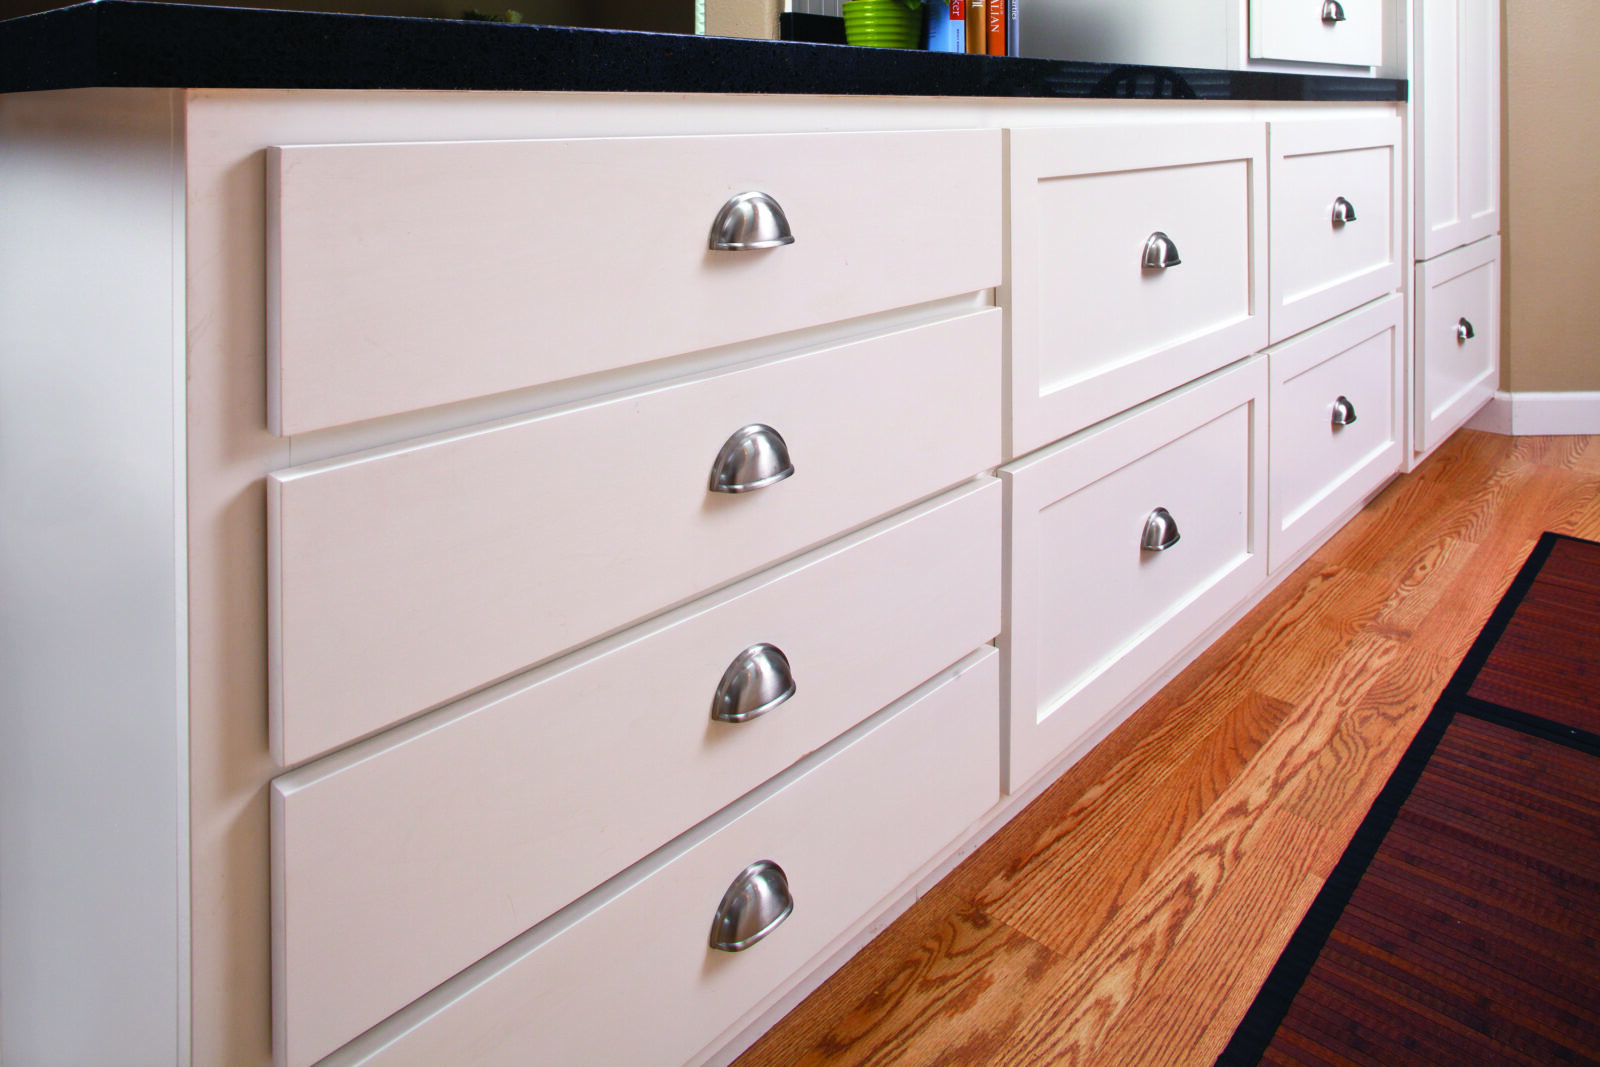 Cabinet refacing is cost effective